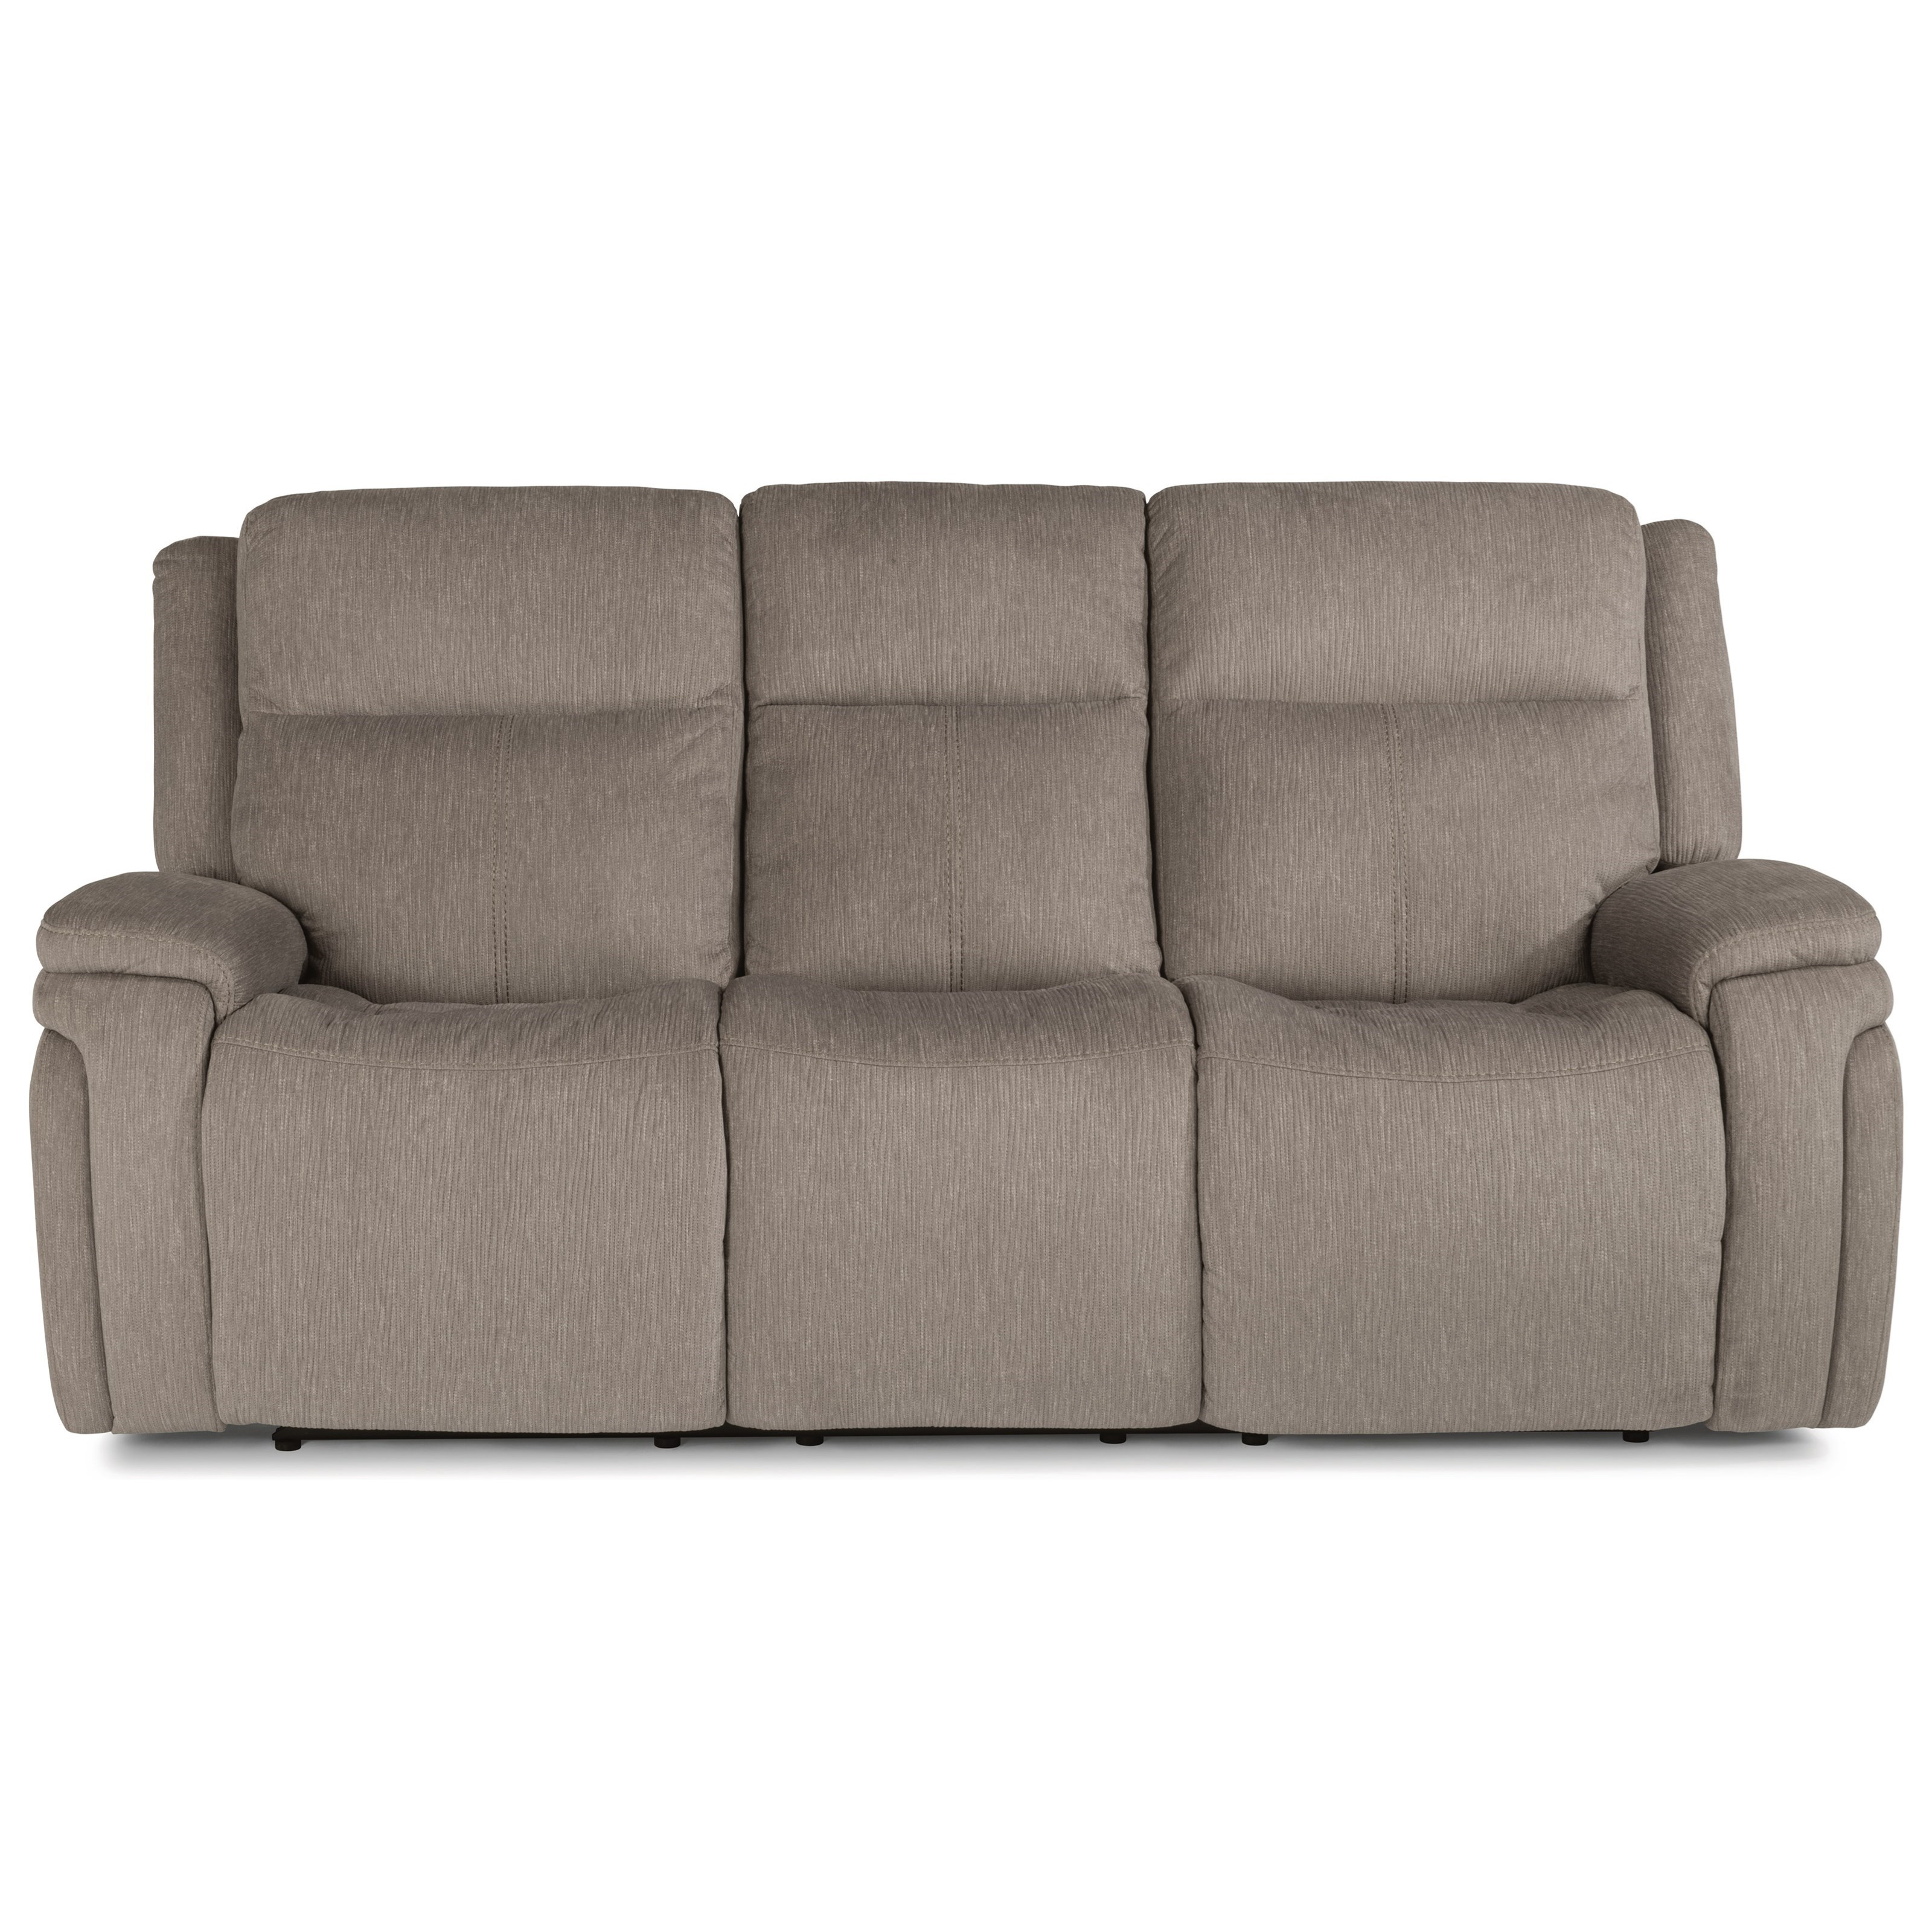 Flexsteel Sofa Bed Mattress: Rocket Contemporary Power Reclining